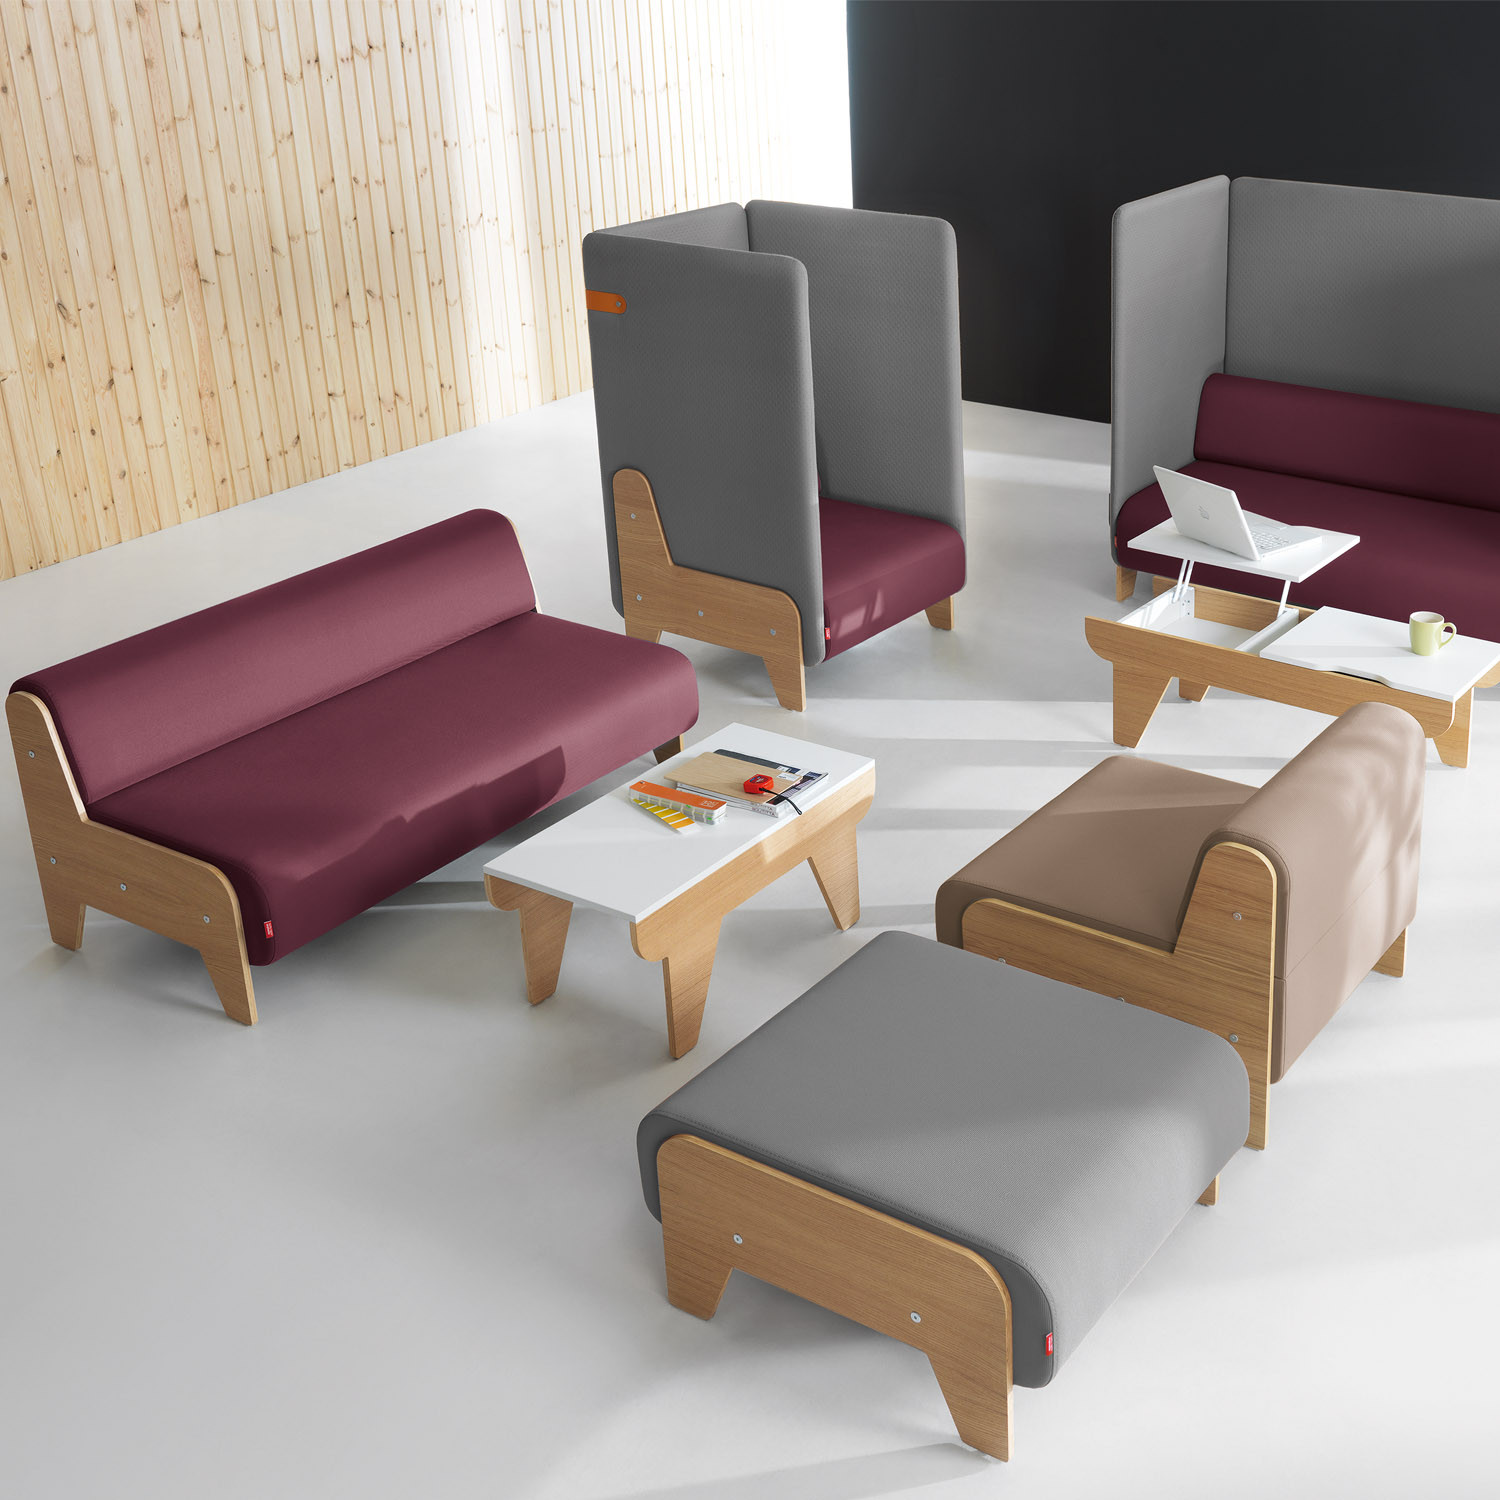 Sofas chill out sofas chill out with sofas chill out - Chill out sofa ...